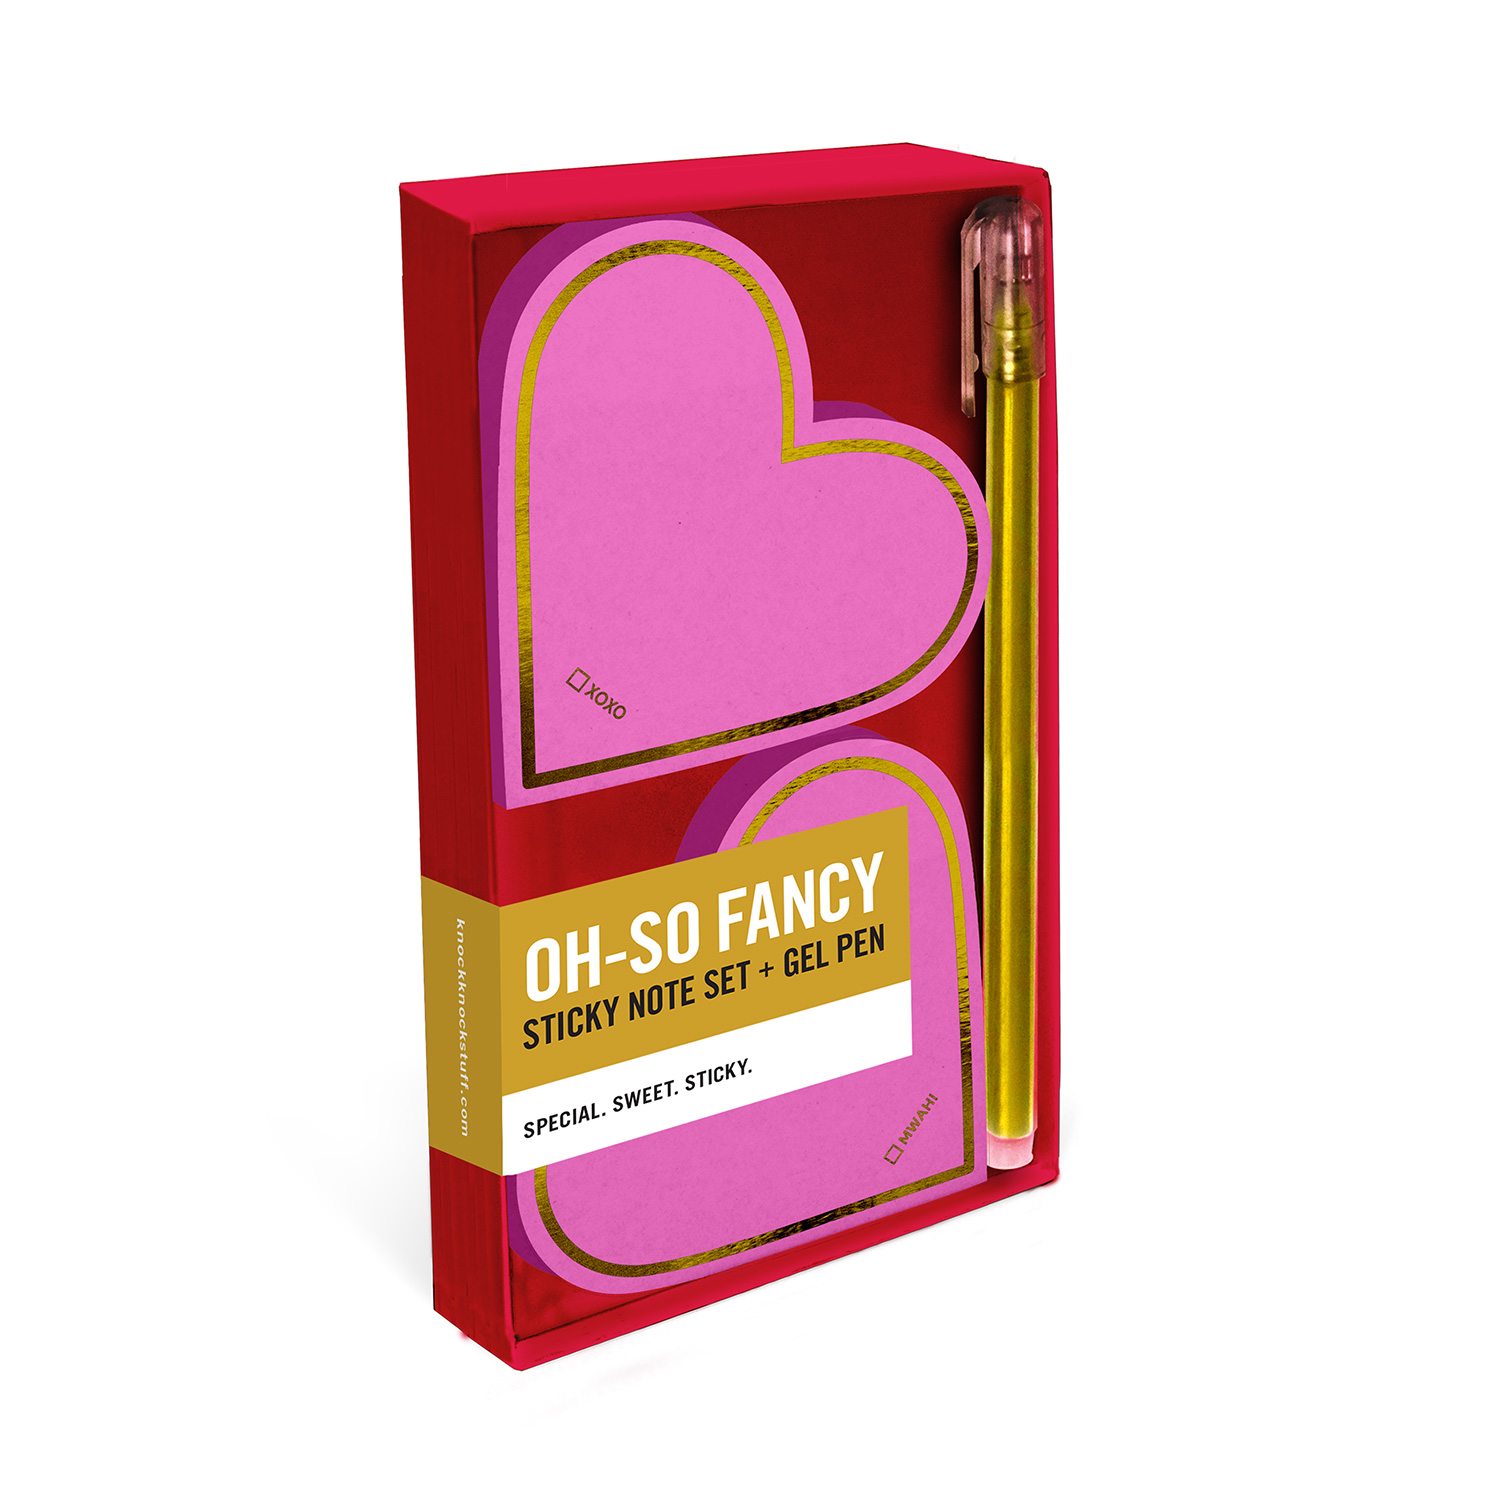 Oh-So Fancy Sticky Sets with Gel Pen: Two Hearts